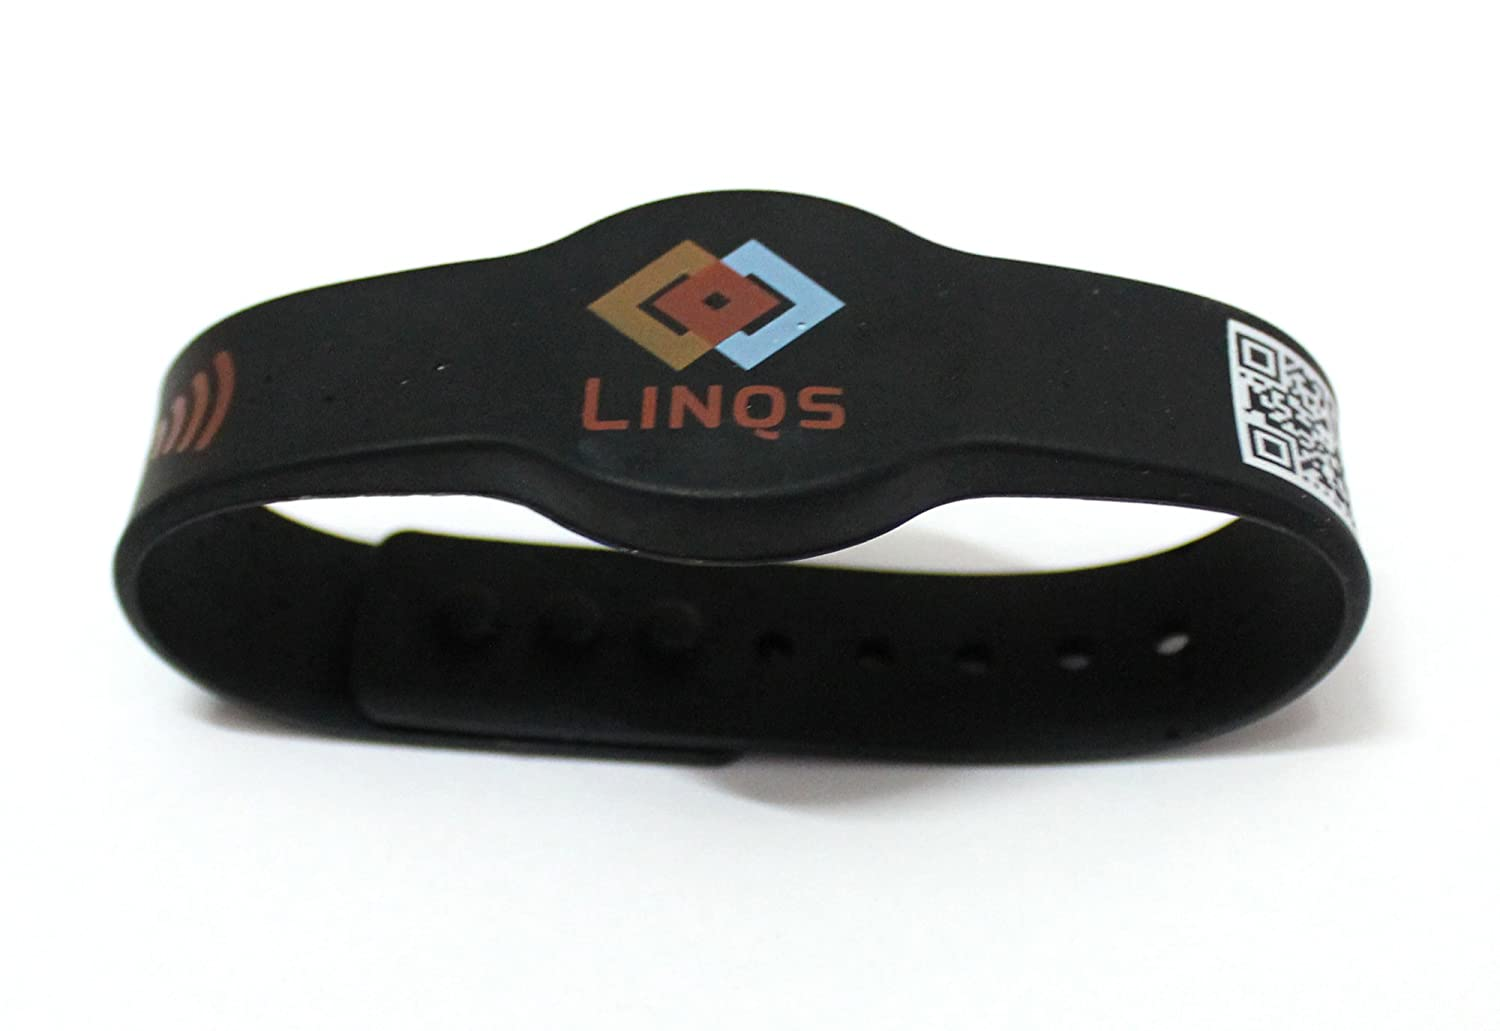 LINQS NFC Smart Wrist Band (Black) - with fast NXP NTAG213 NFC Chip